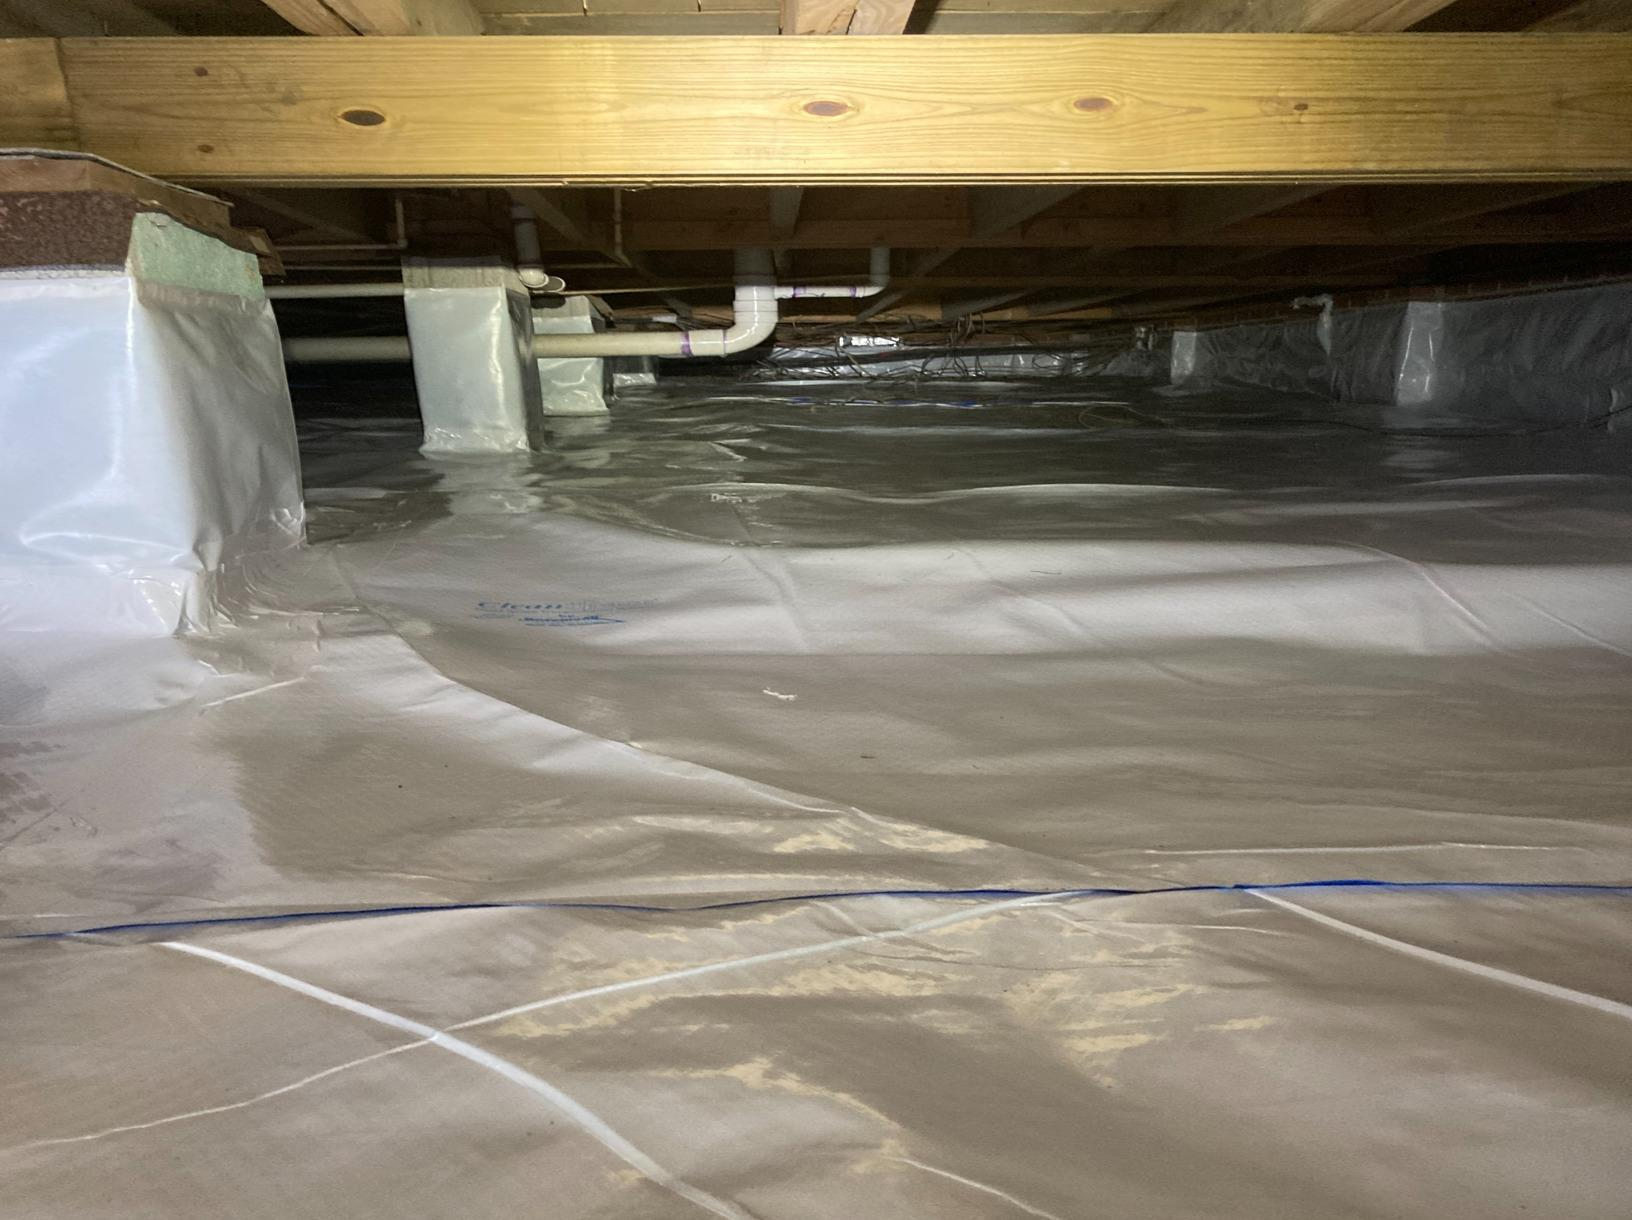 Crawlspace Holding Water in Hattiesburg, MS - After Photo